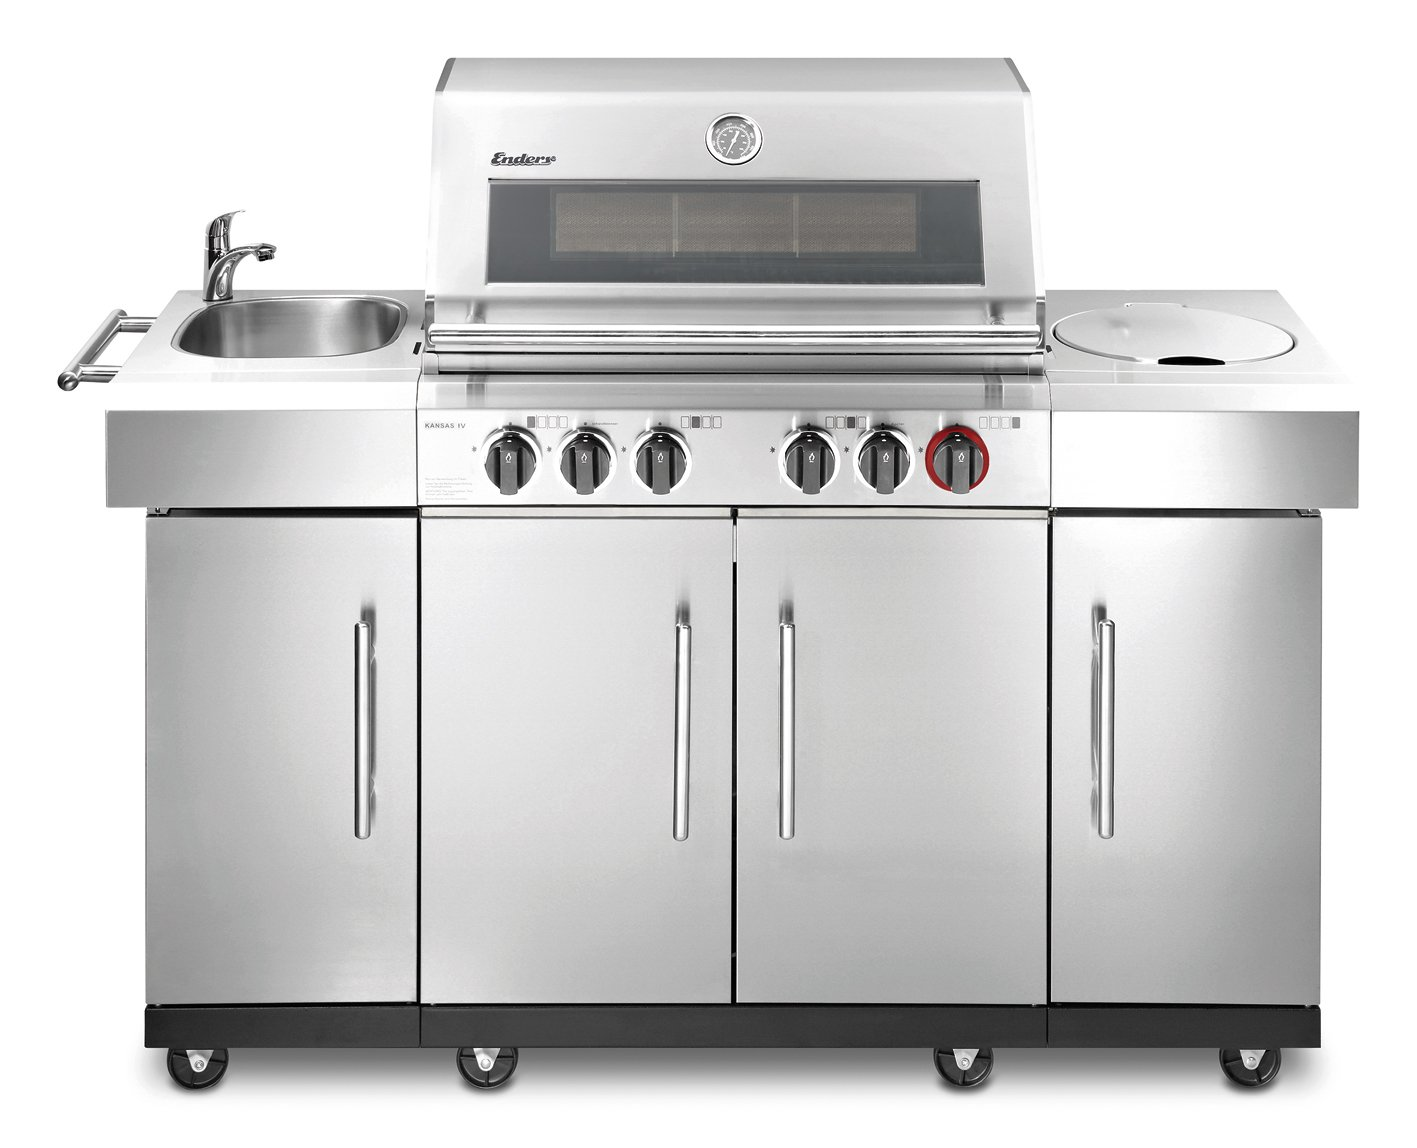 Enders BBQ Gasgrill KANSAS 4 SIK Profi Turbo, Gas Grill 8725*